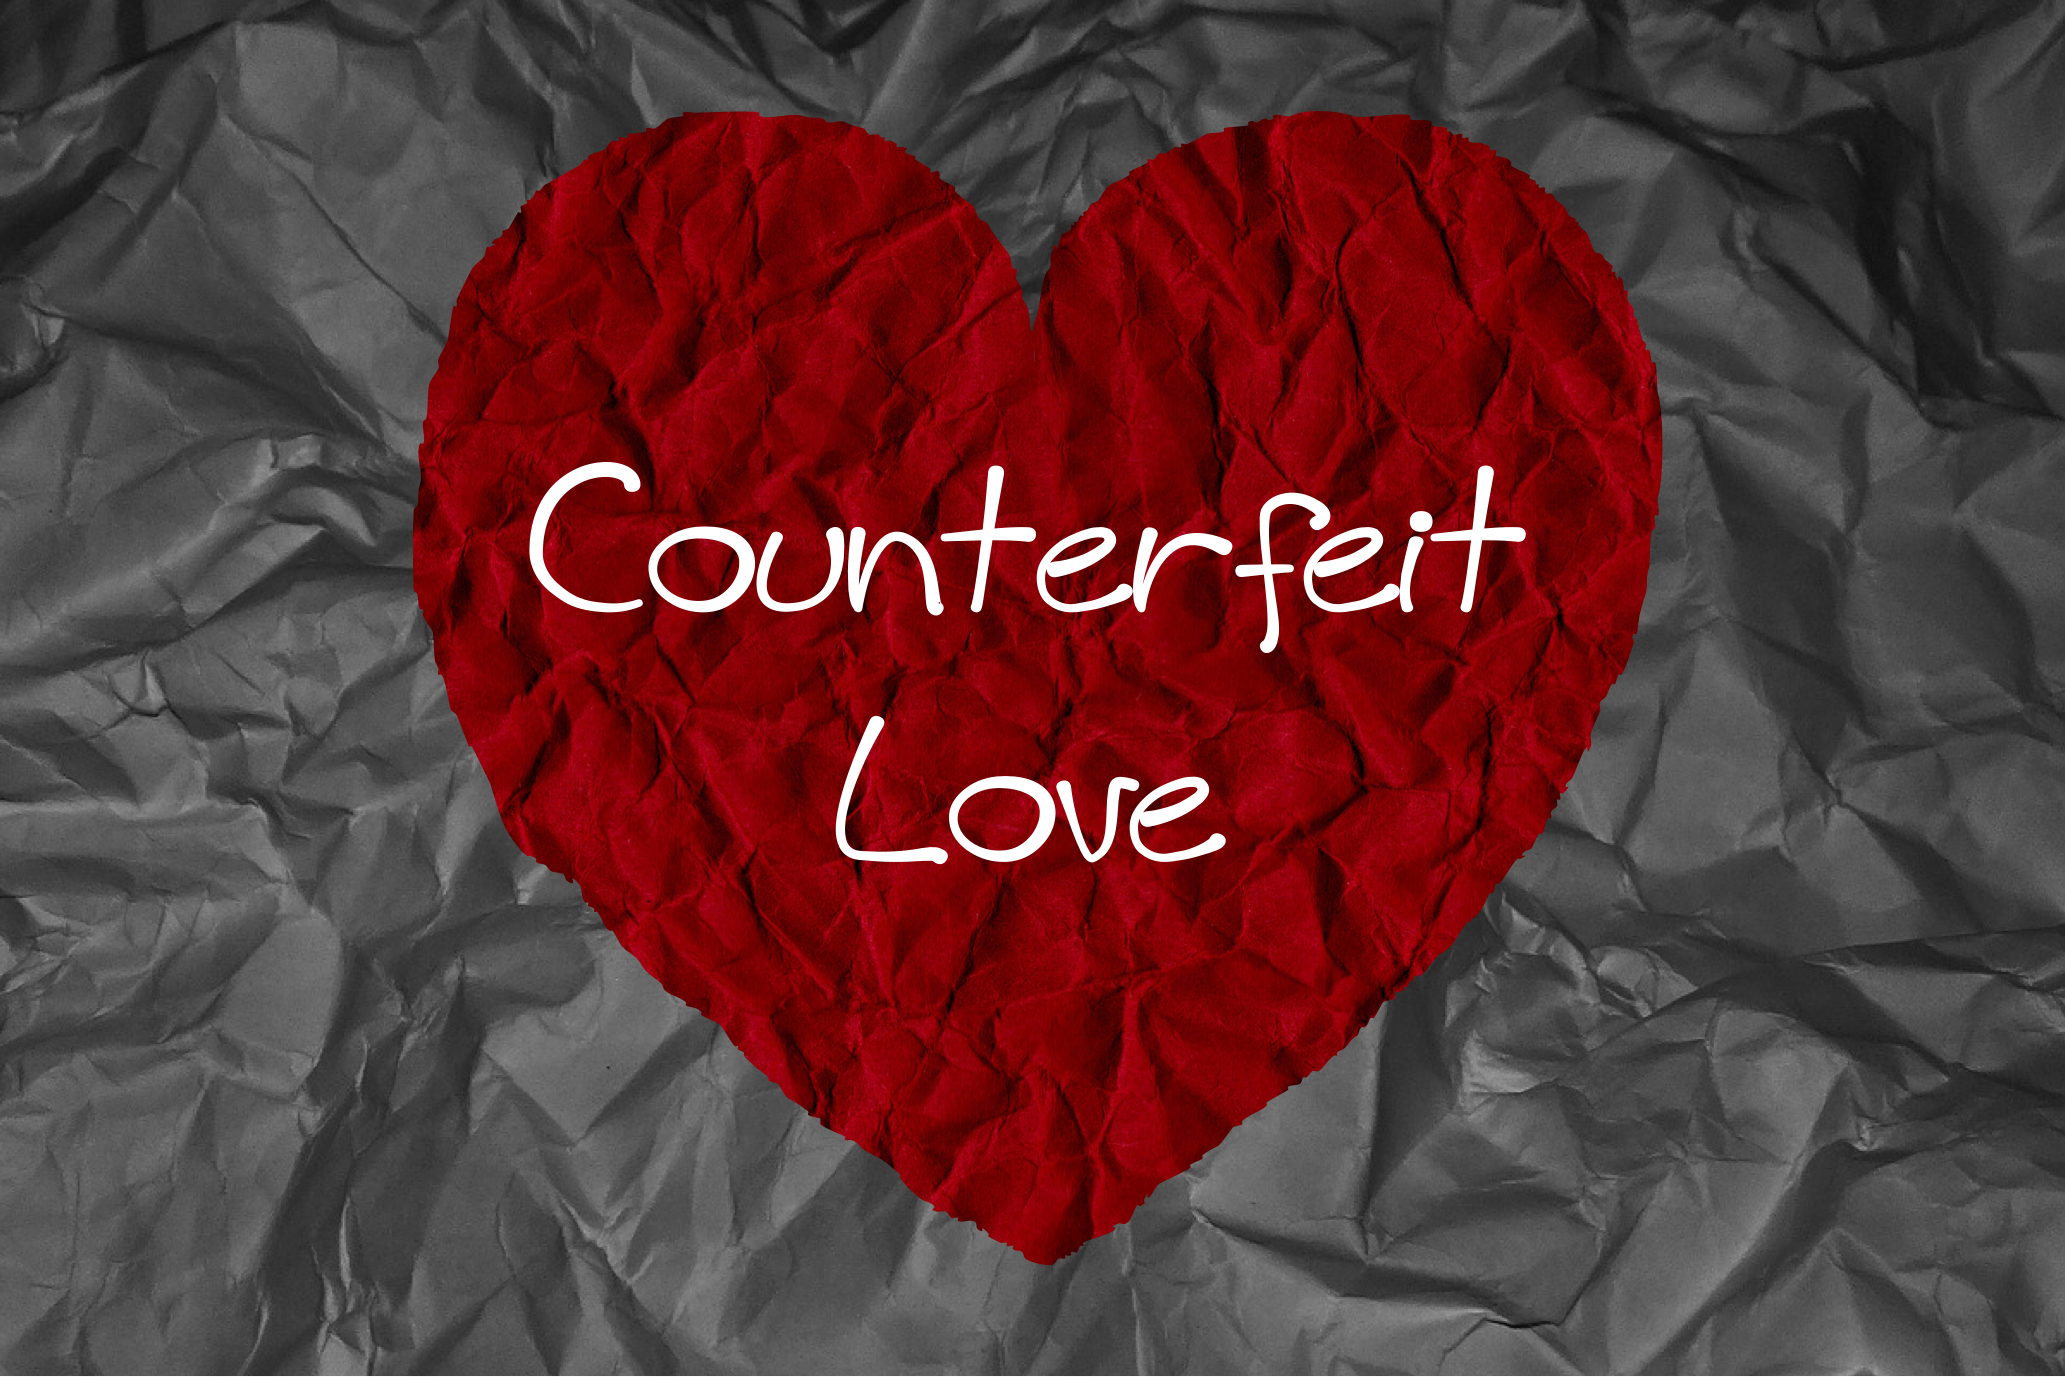 Counterfeit Love